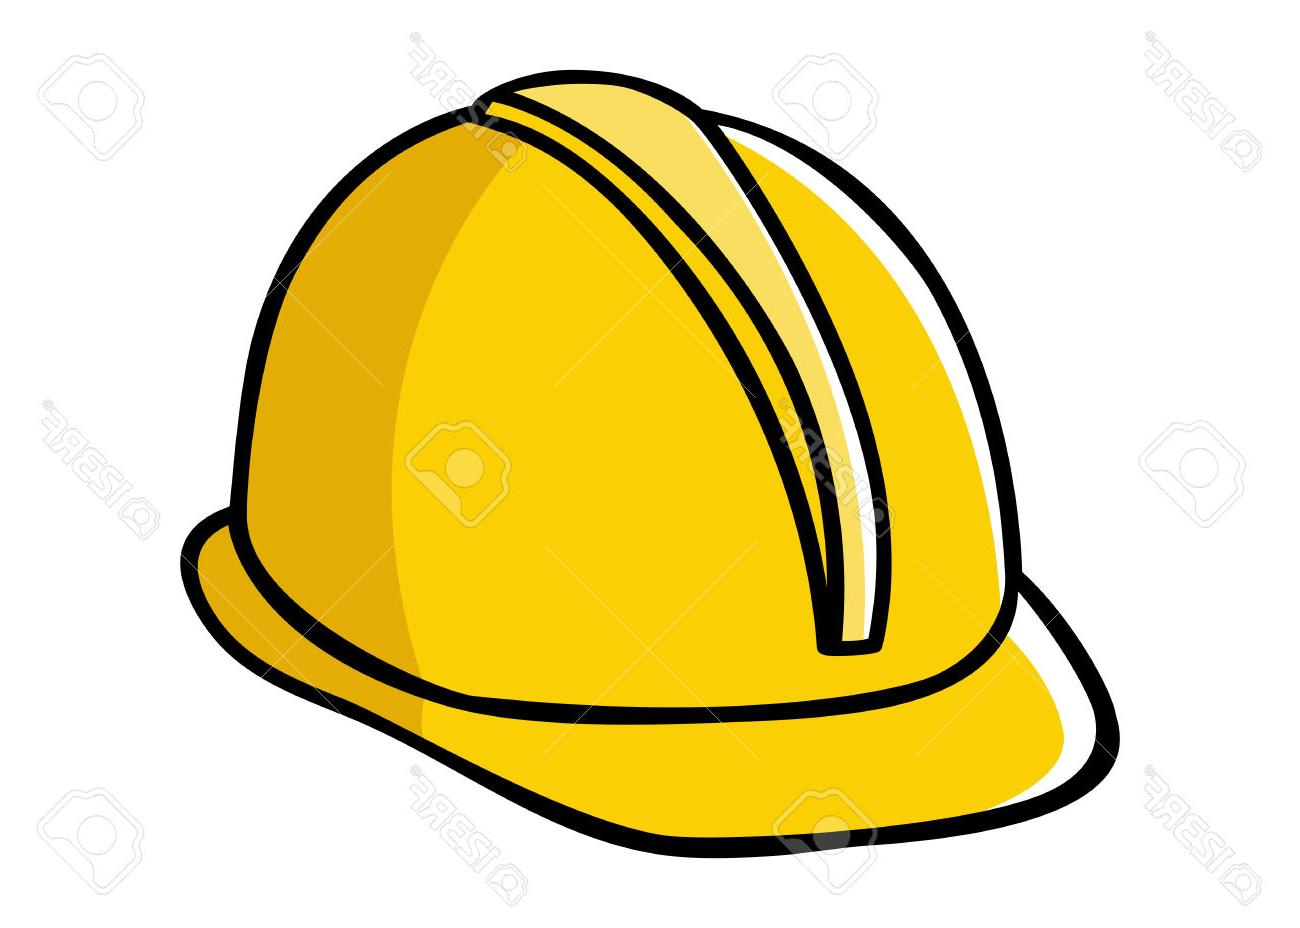 71 Construction Hat free clipart.